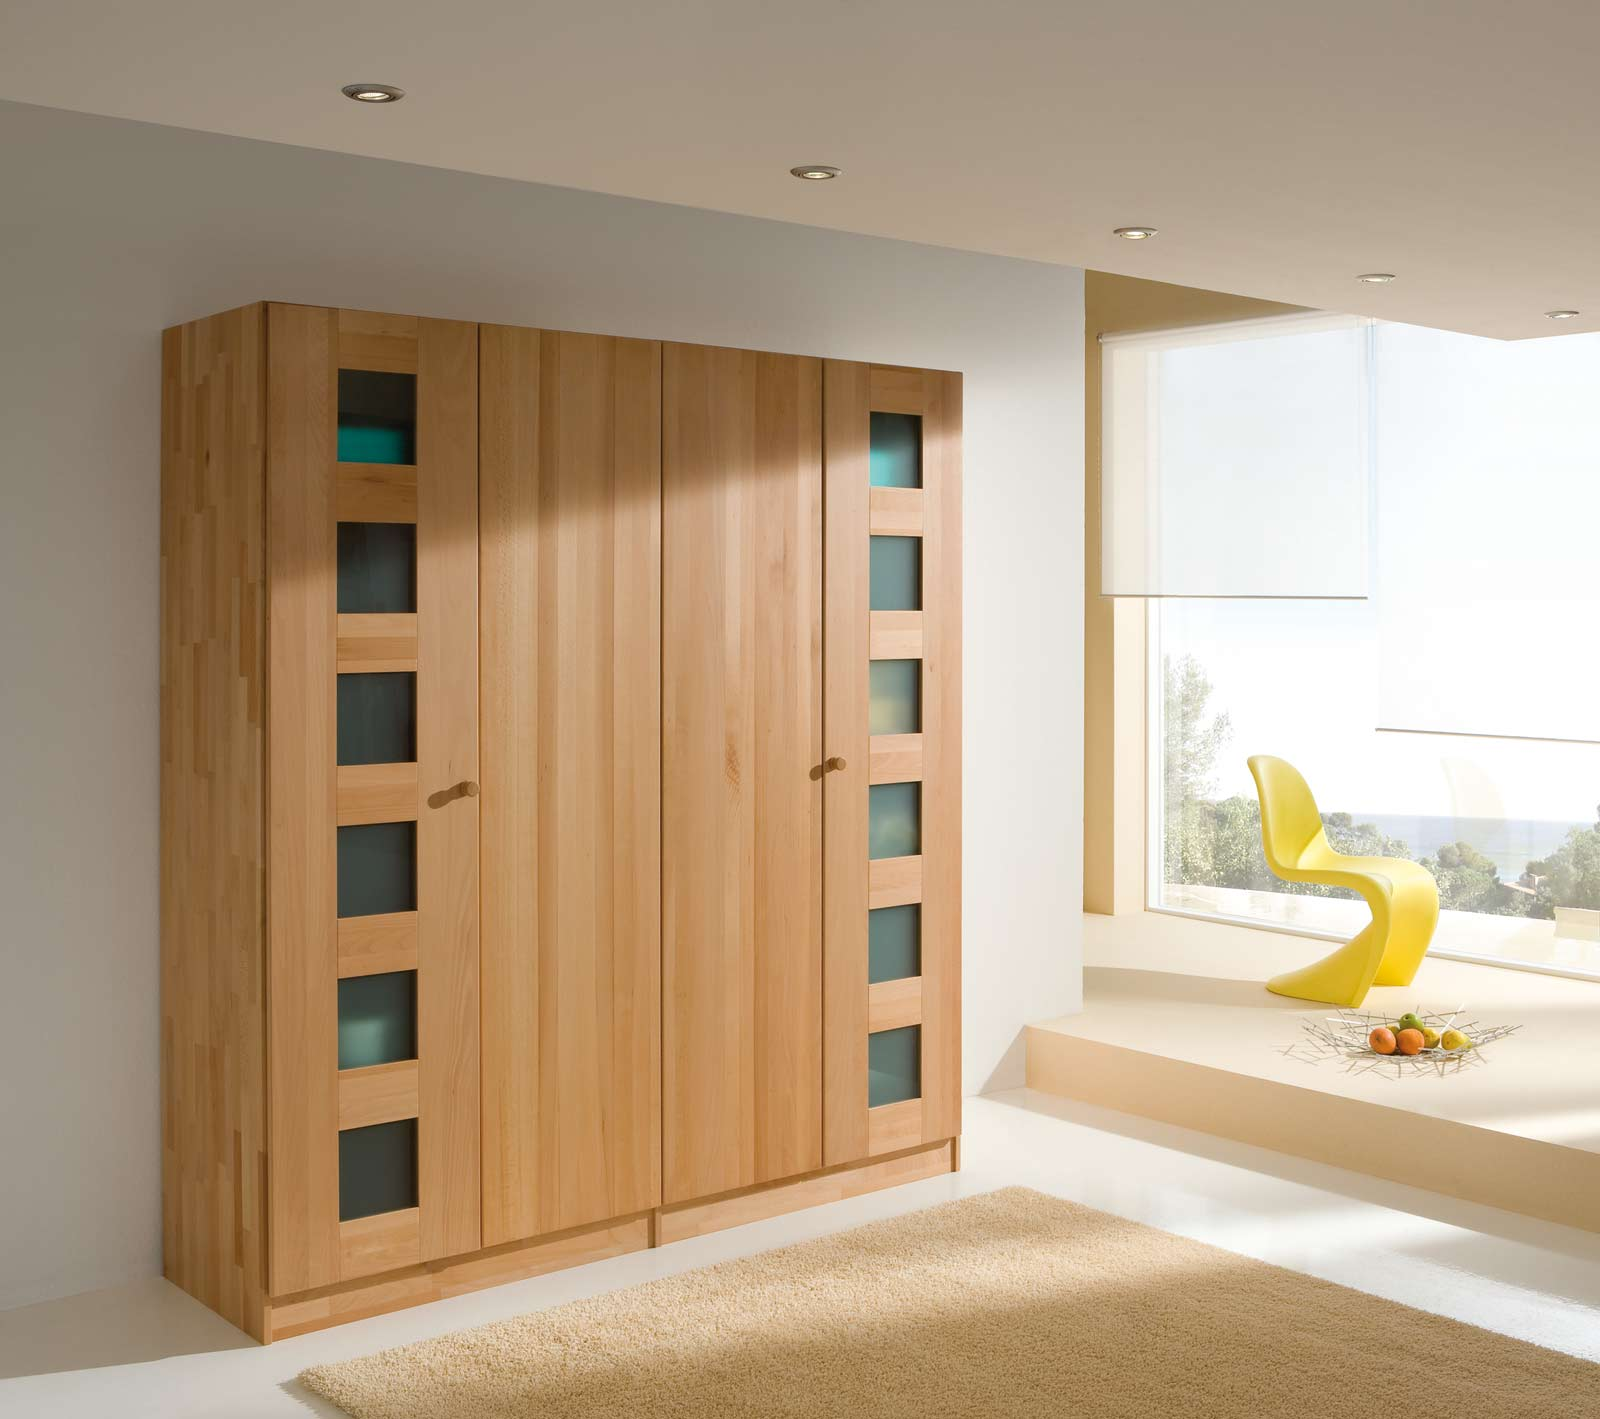 santo kleiderschrank echtholz mit t ren aus holz und glas purenature. Black Bedroom Furniture Sets. Home Design Ideas